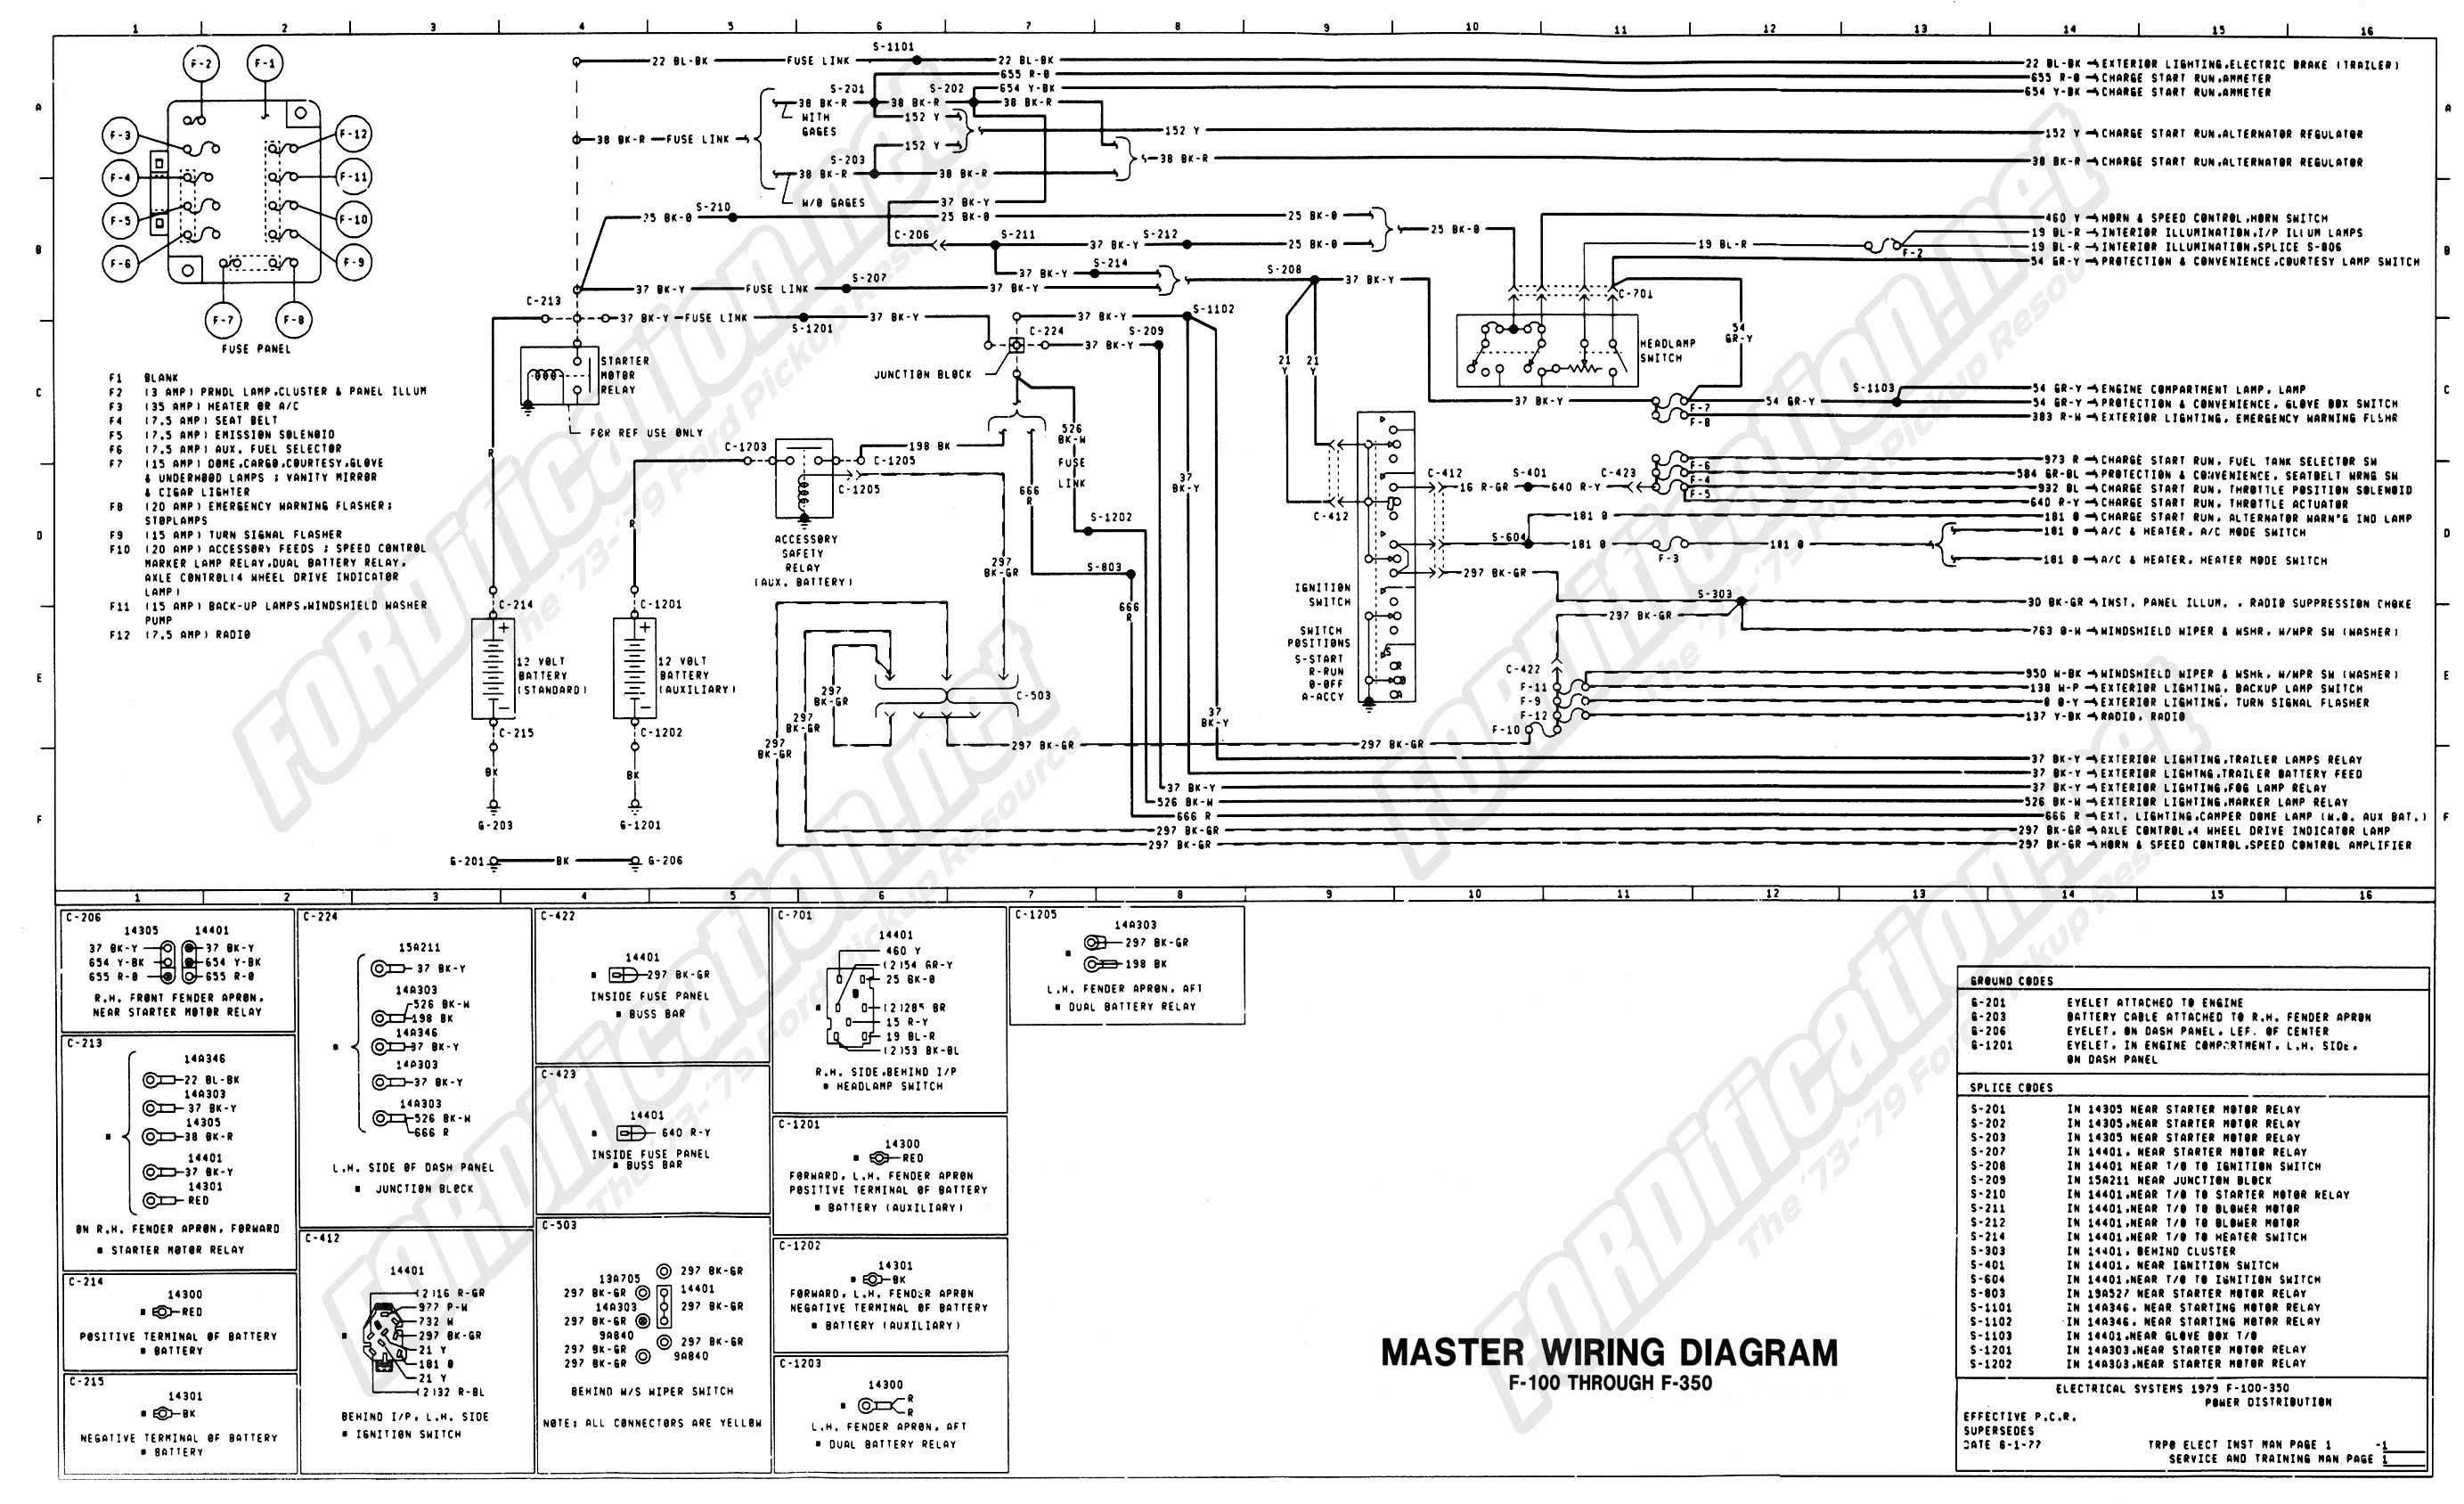 2000 Dodge Durango Transmission Wiring Diagram Library Layout 1971 Ignition Real U2022 Rh Mcmxliv Co Window